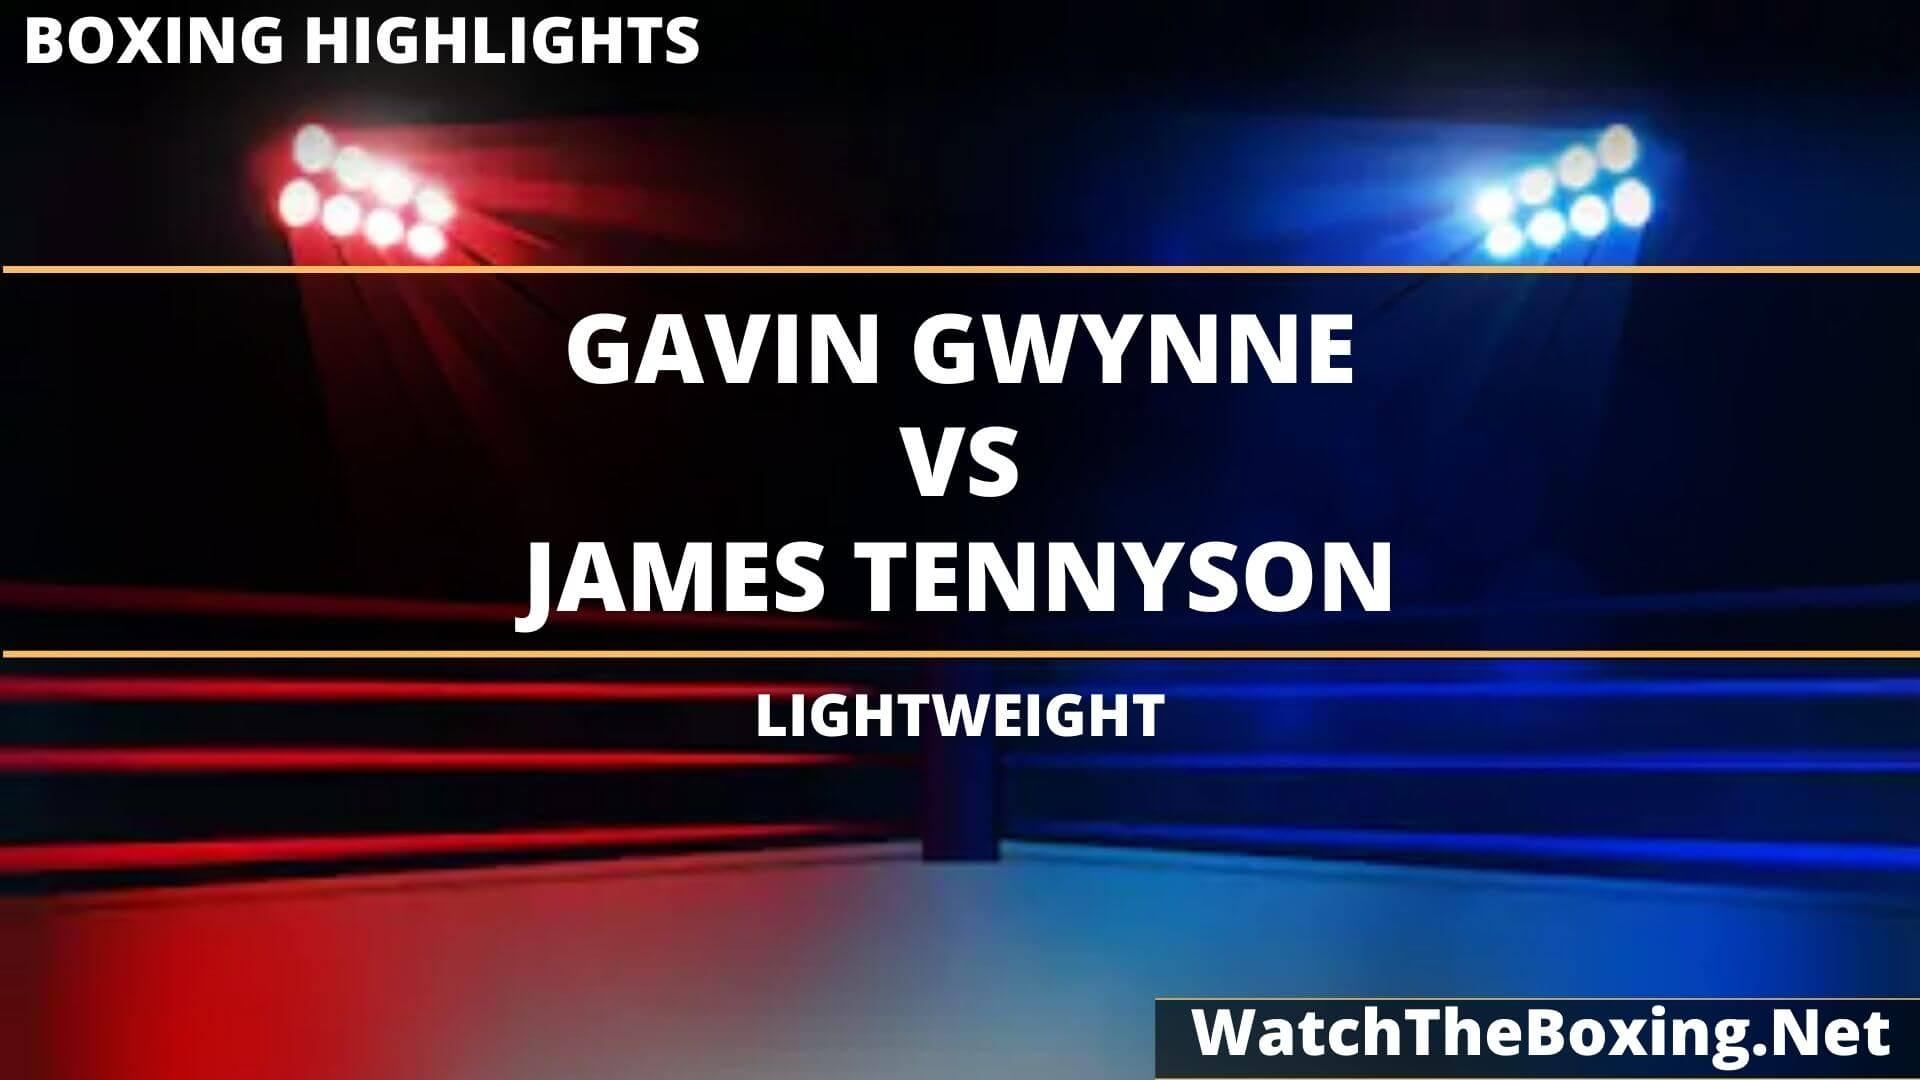 Gavin Gwynne Vs James Tennyson Highlights 2020 Lightweight